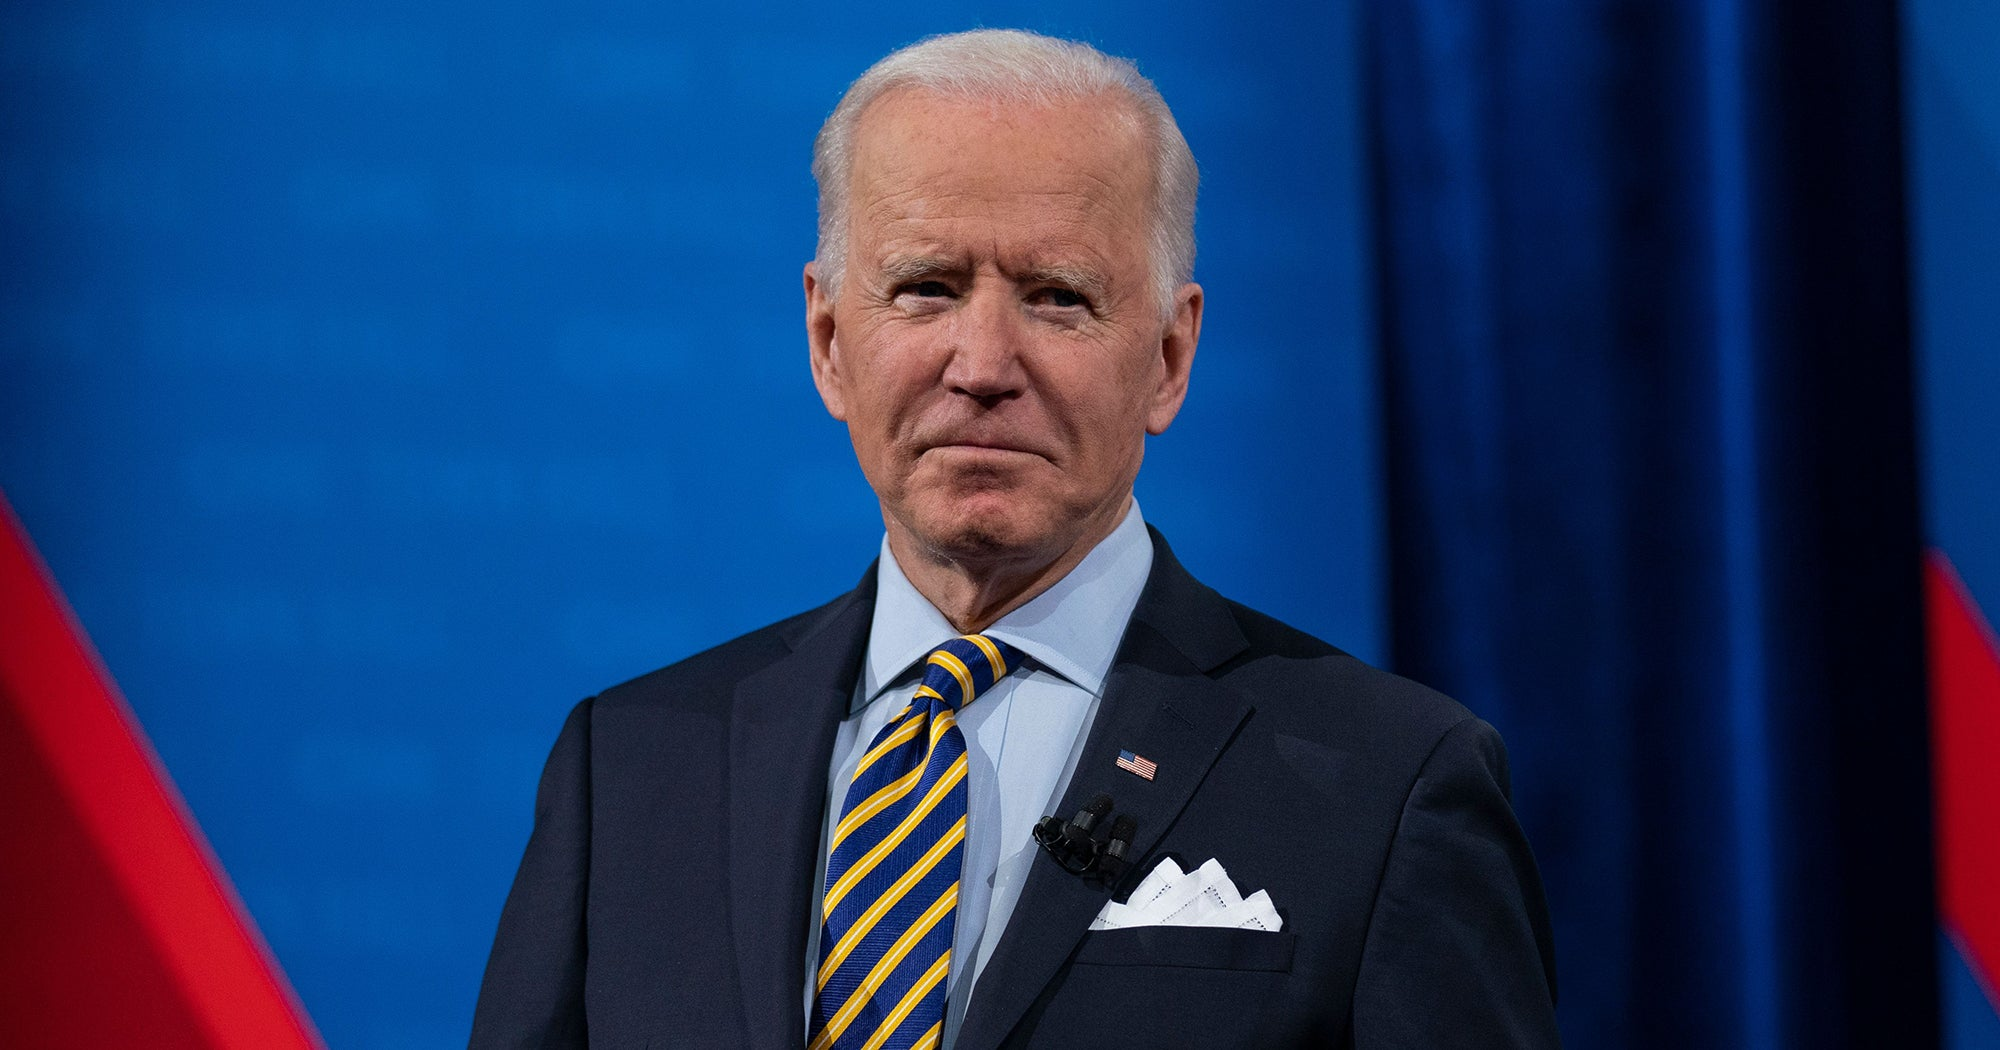 www.refinery29.com: Biden Promised To Prioritize Women's Rights. Here's The Plan To Actually Do It.